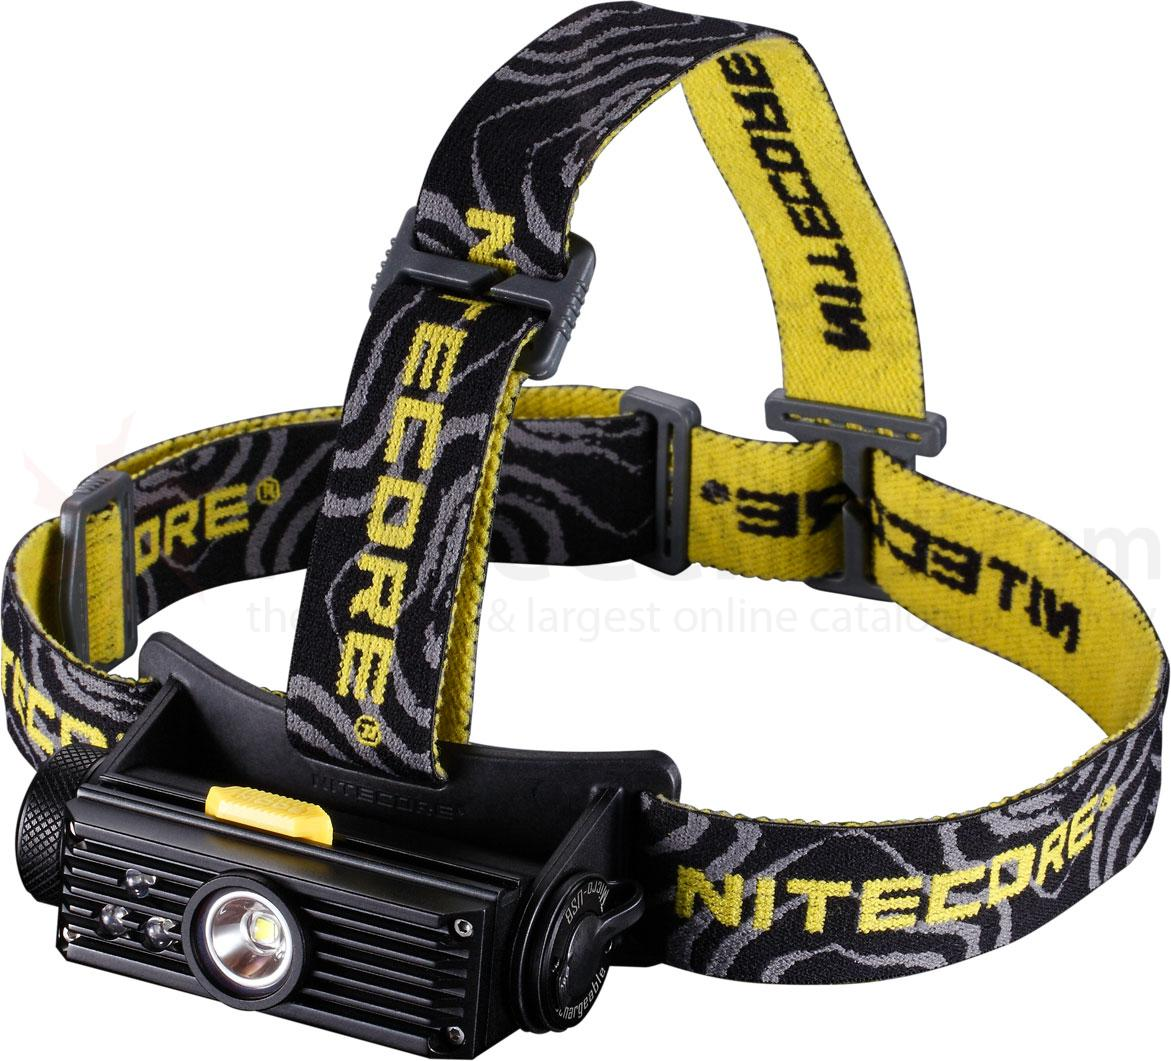 NITECORE HC90 Rechargeable 18650 LED Headlamp, Black, 900 Max Lumens